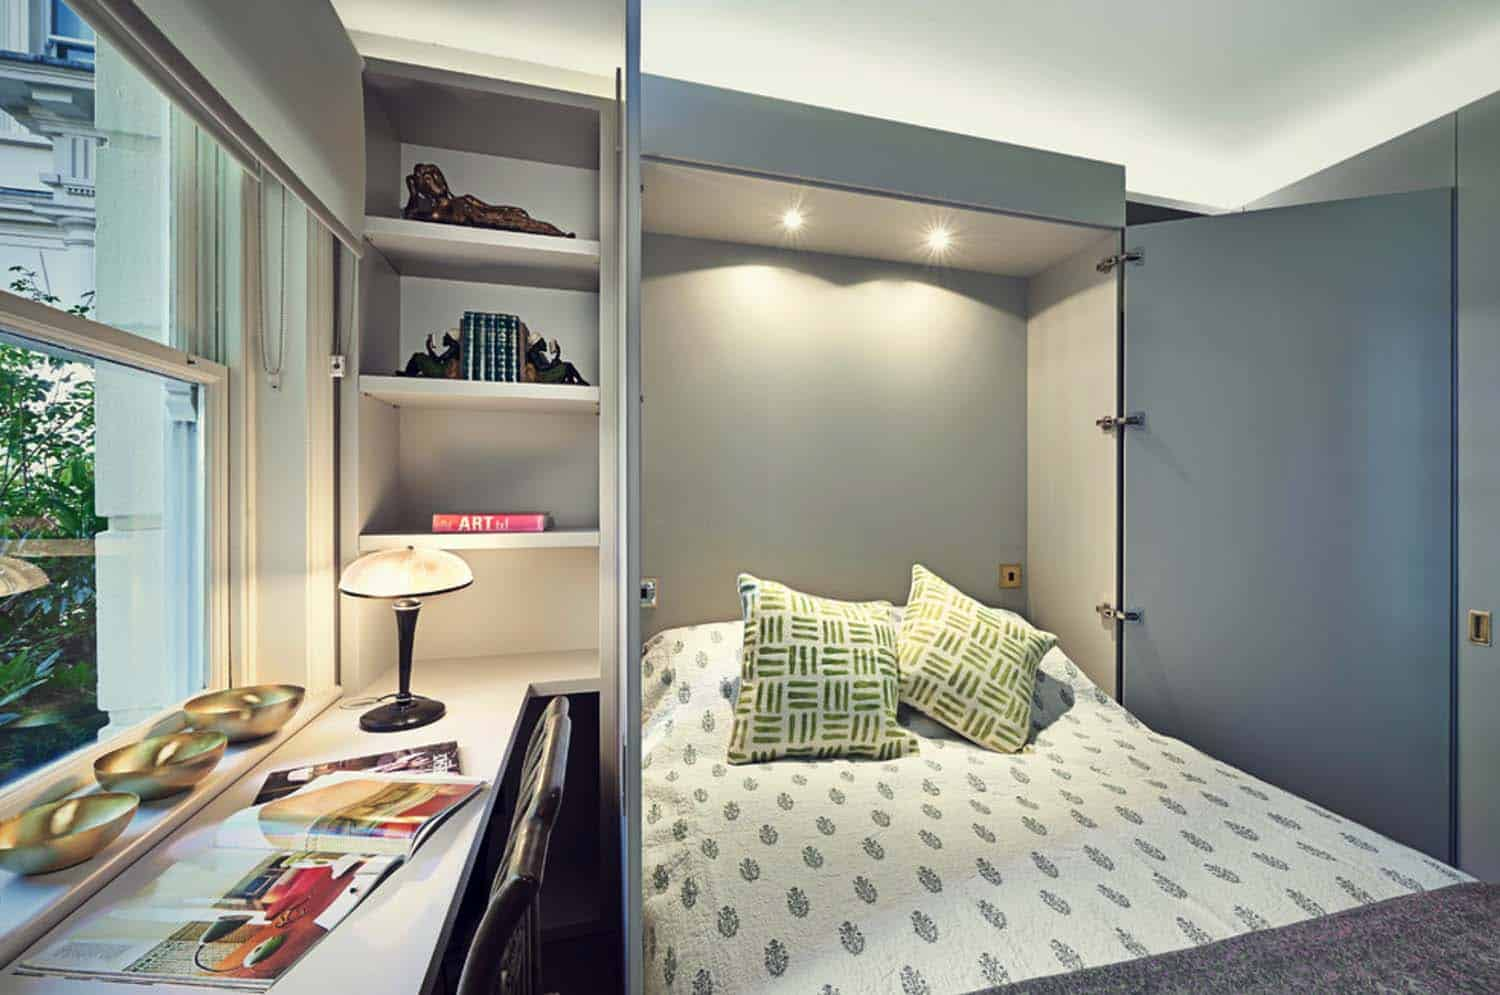 Guest room/office combo with Murphy bed | Source: onekindesign.com